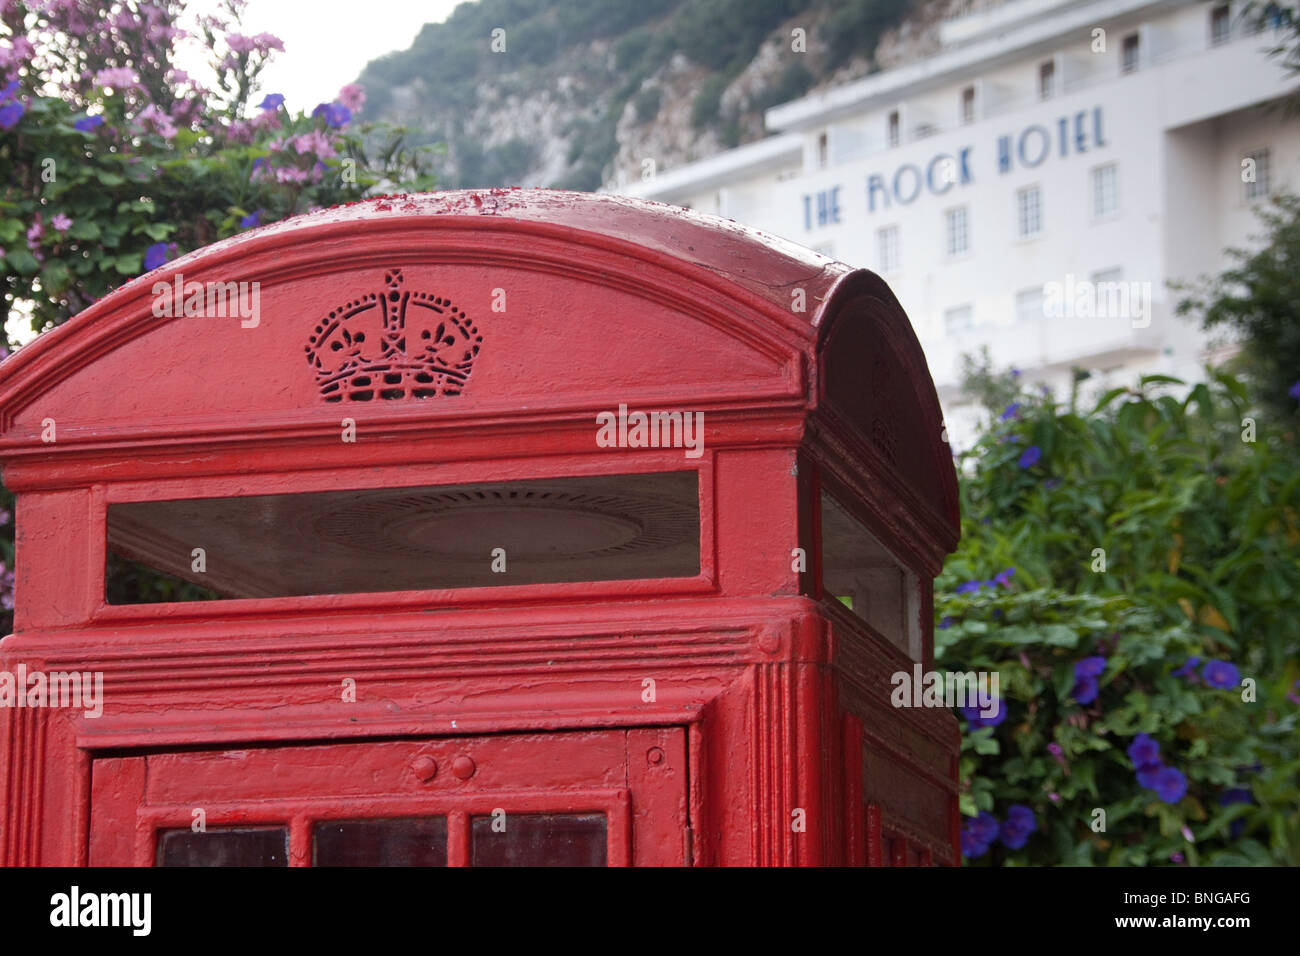 The Rock Hotel, Gibraltar with red British-style telephone box - Stock Image